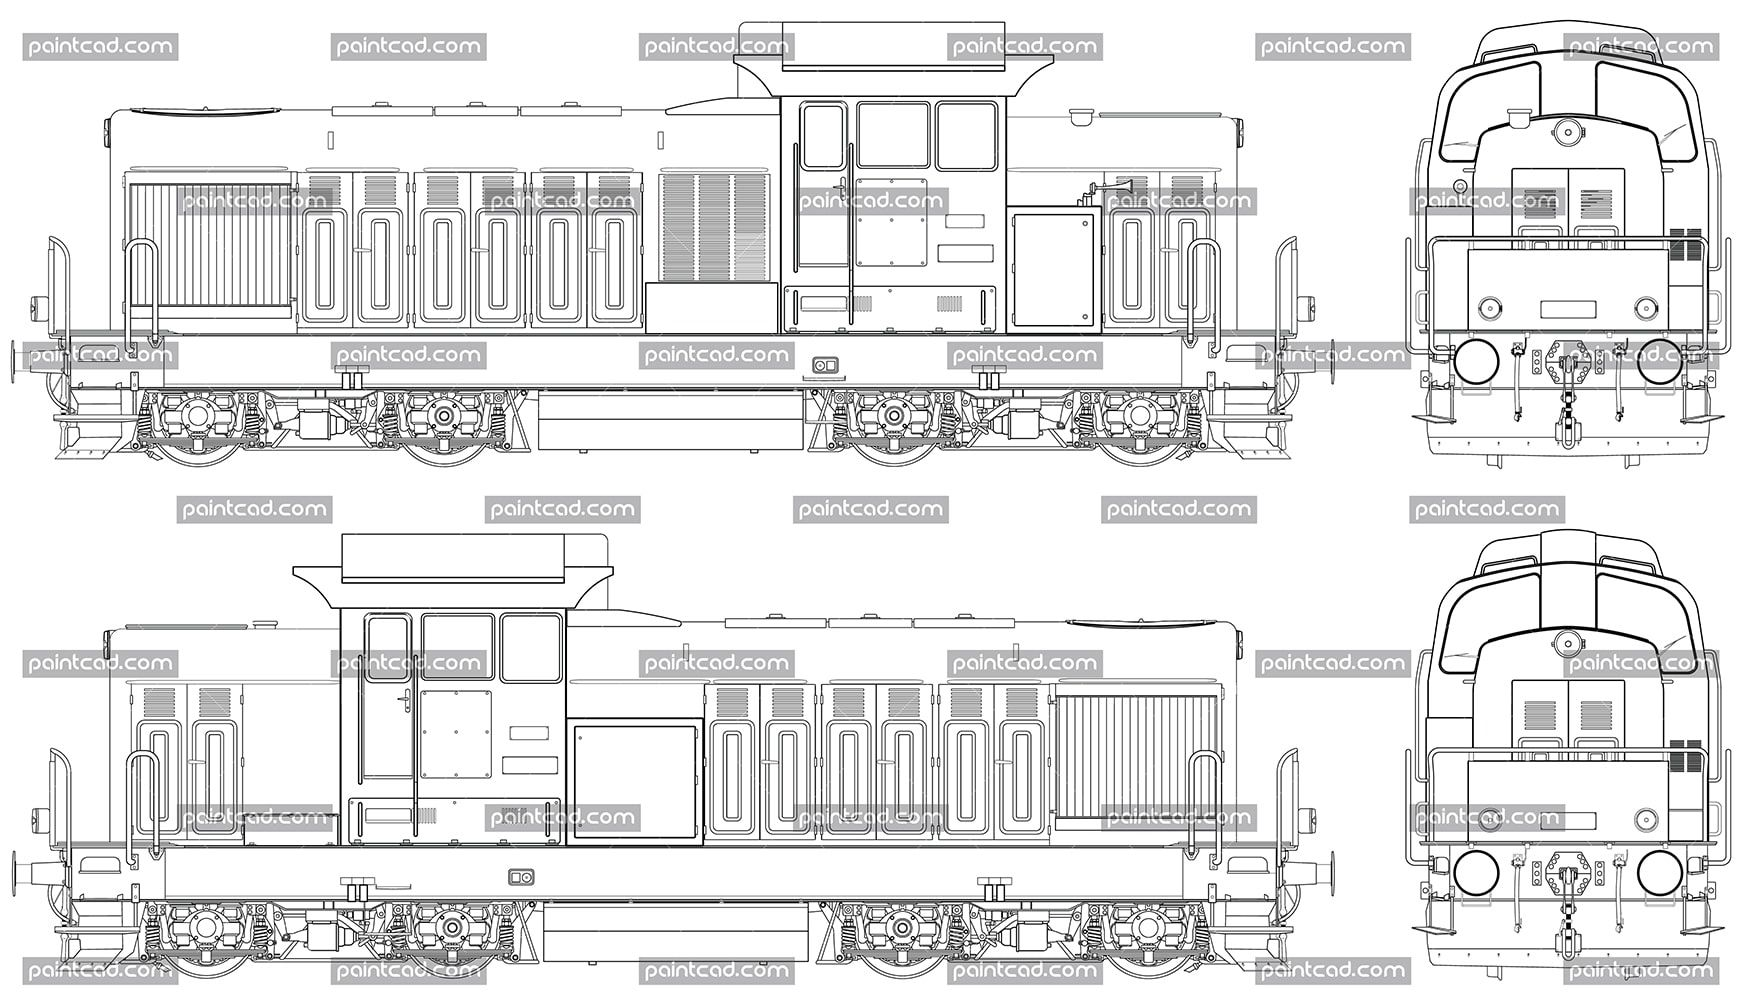 Electric Locomotive Engine Diagram